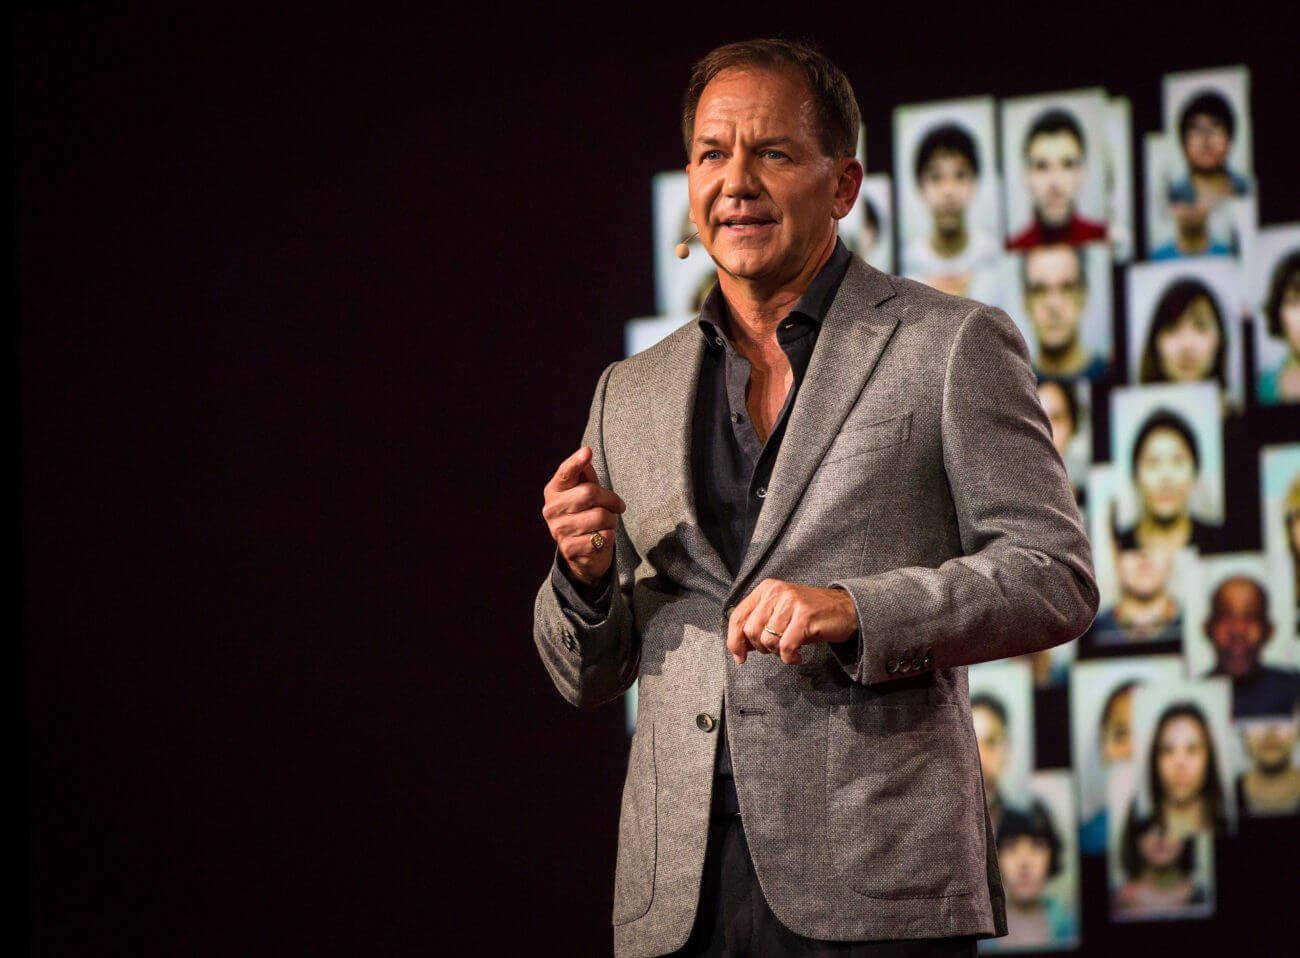 Billionaire Paul Tudor Jones Wants To Web His Memoir Straight On Bitcoin